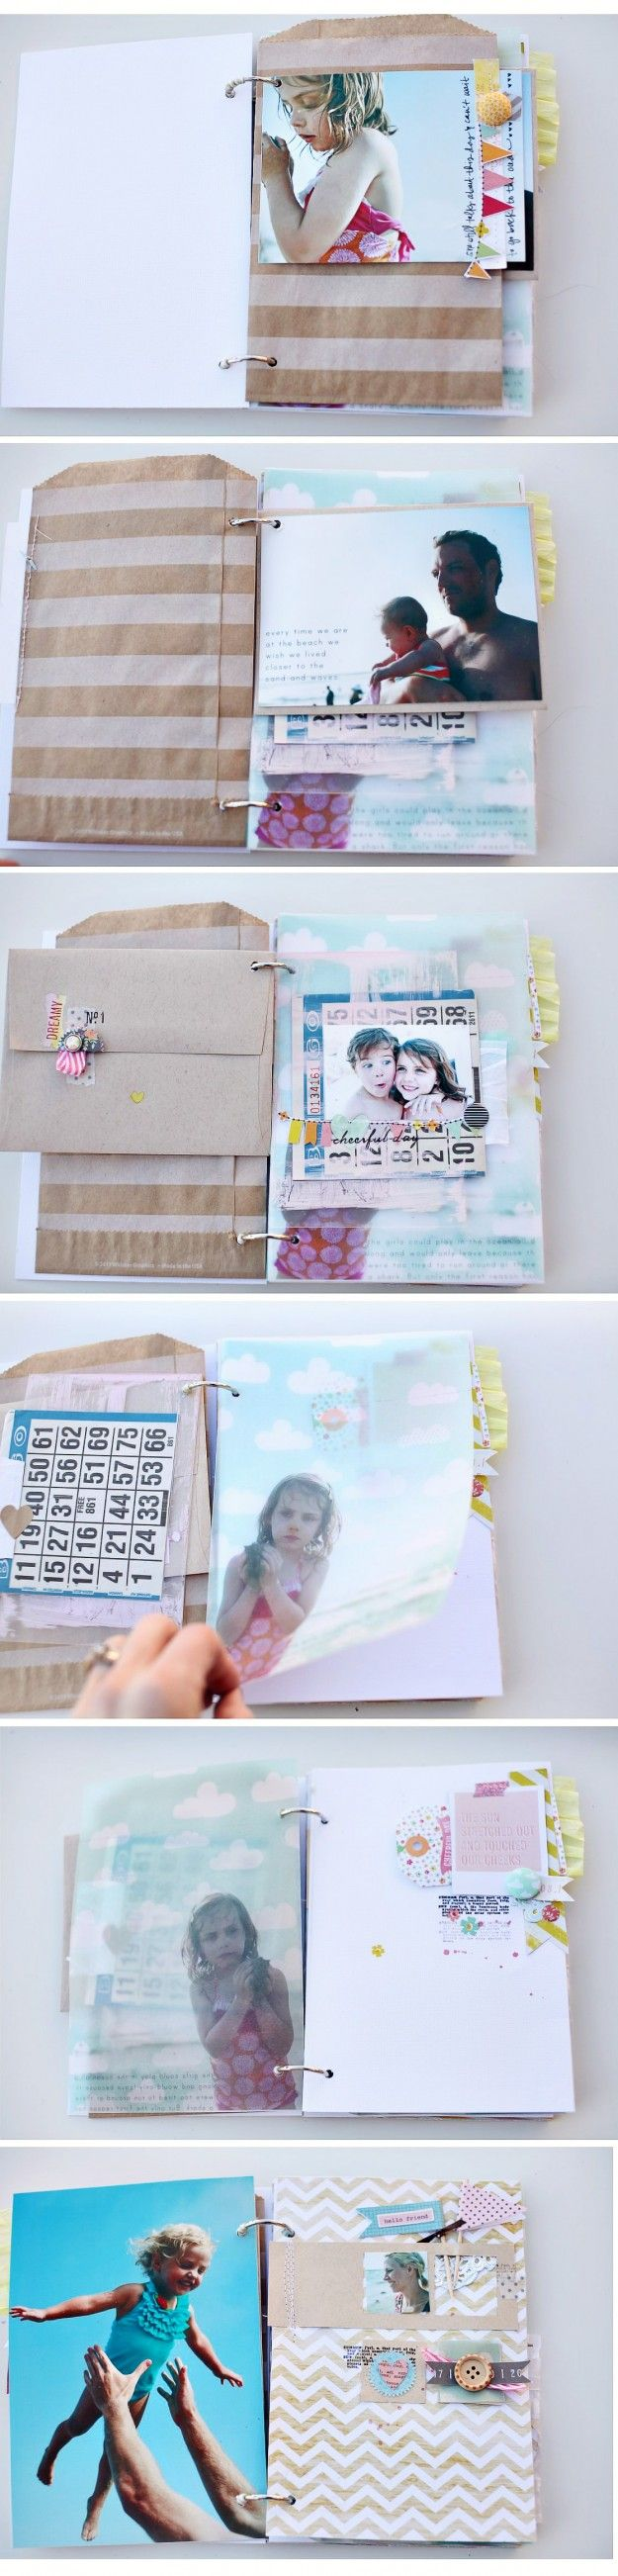 seriously adorable mini album from elizabeth kartchner - love how she printed right onto the vellum paper!